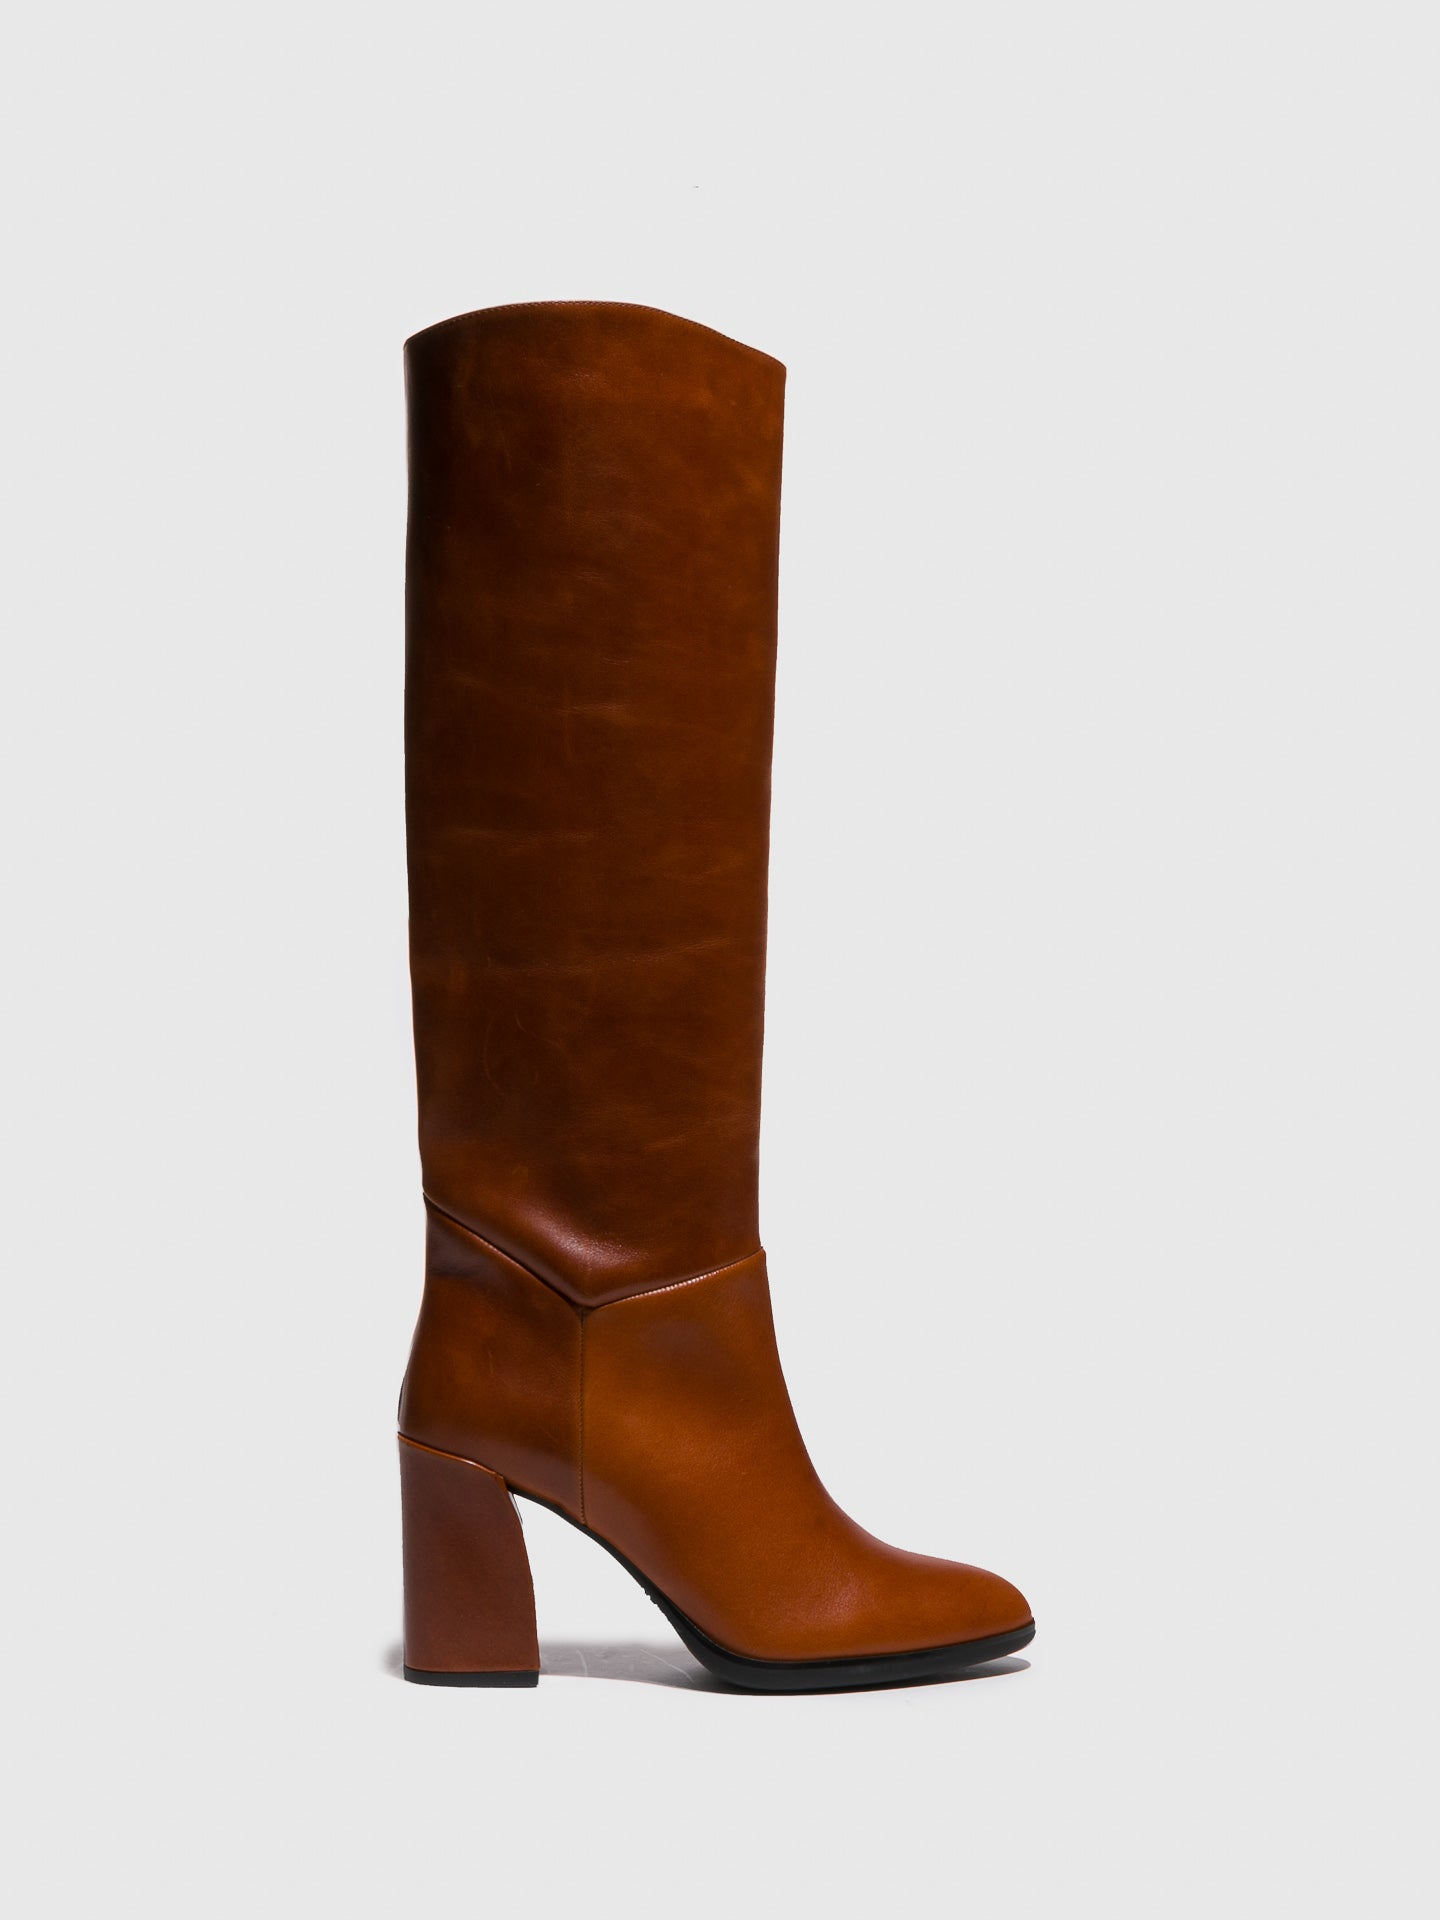 Sofia Costa Camel Knee-High Boots